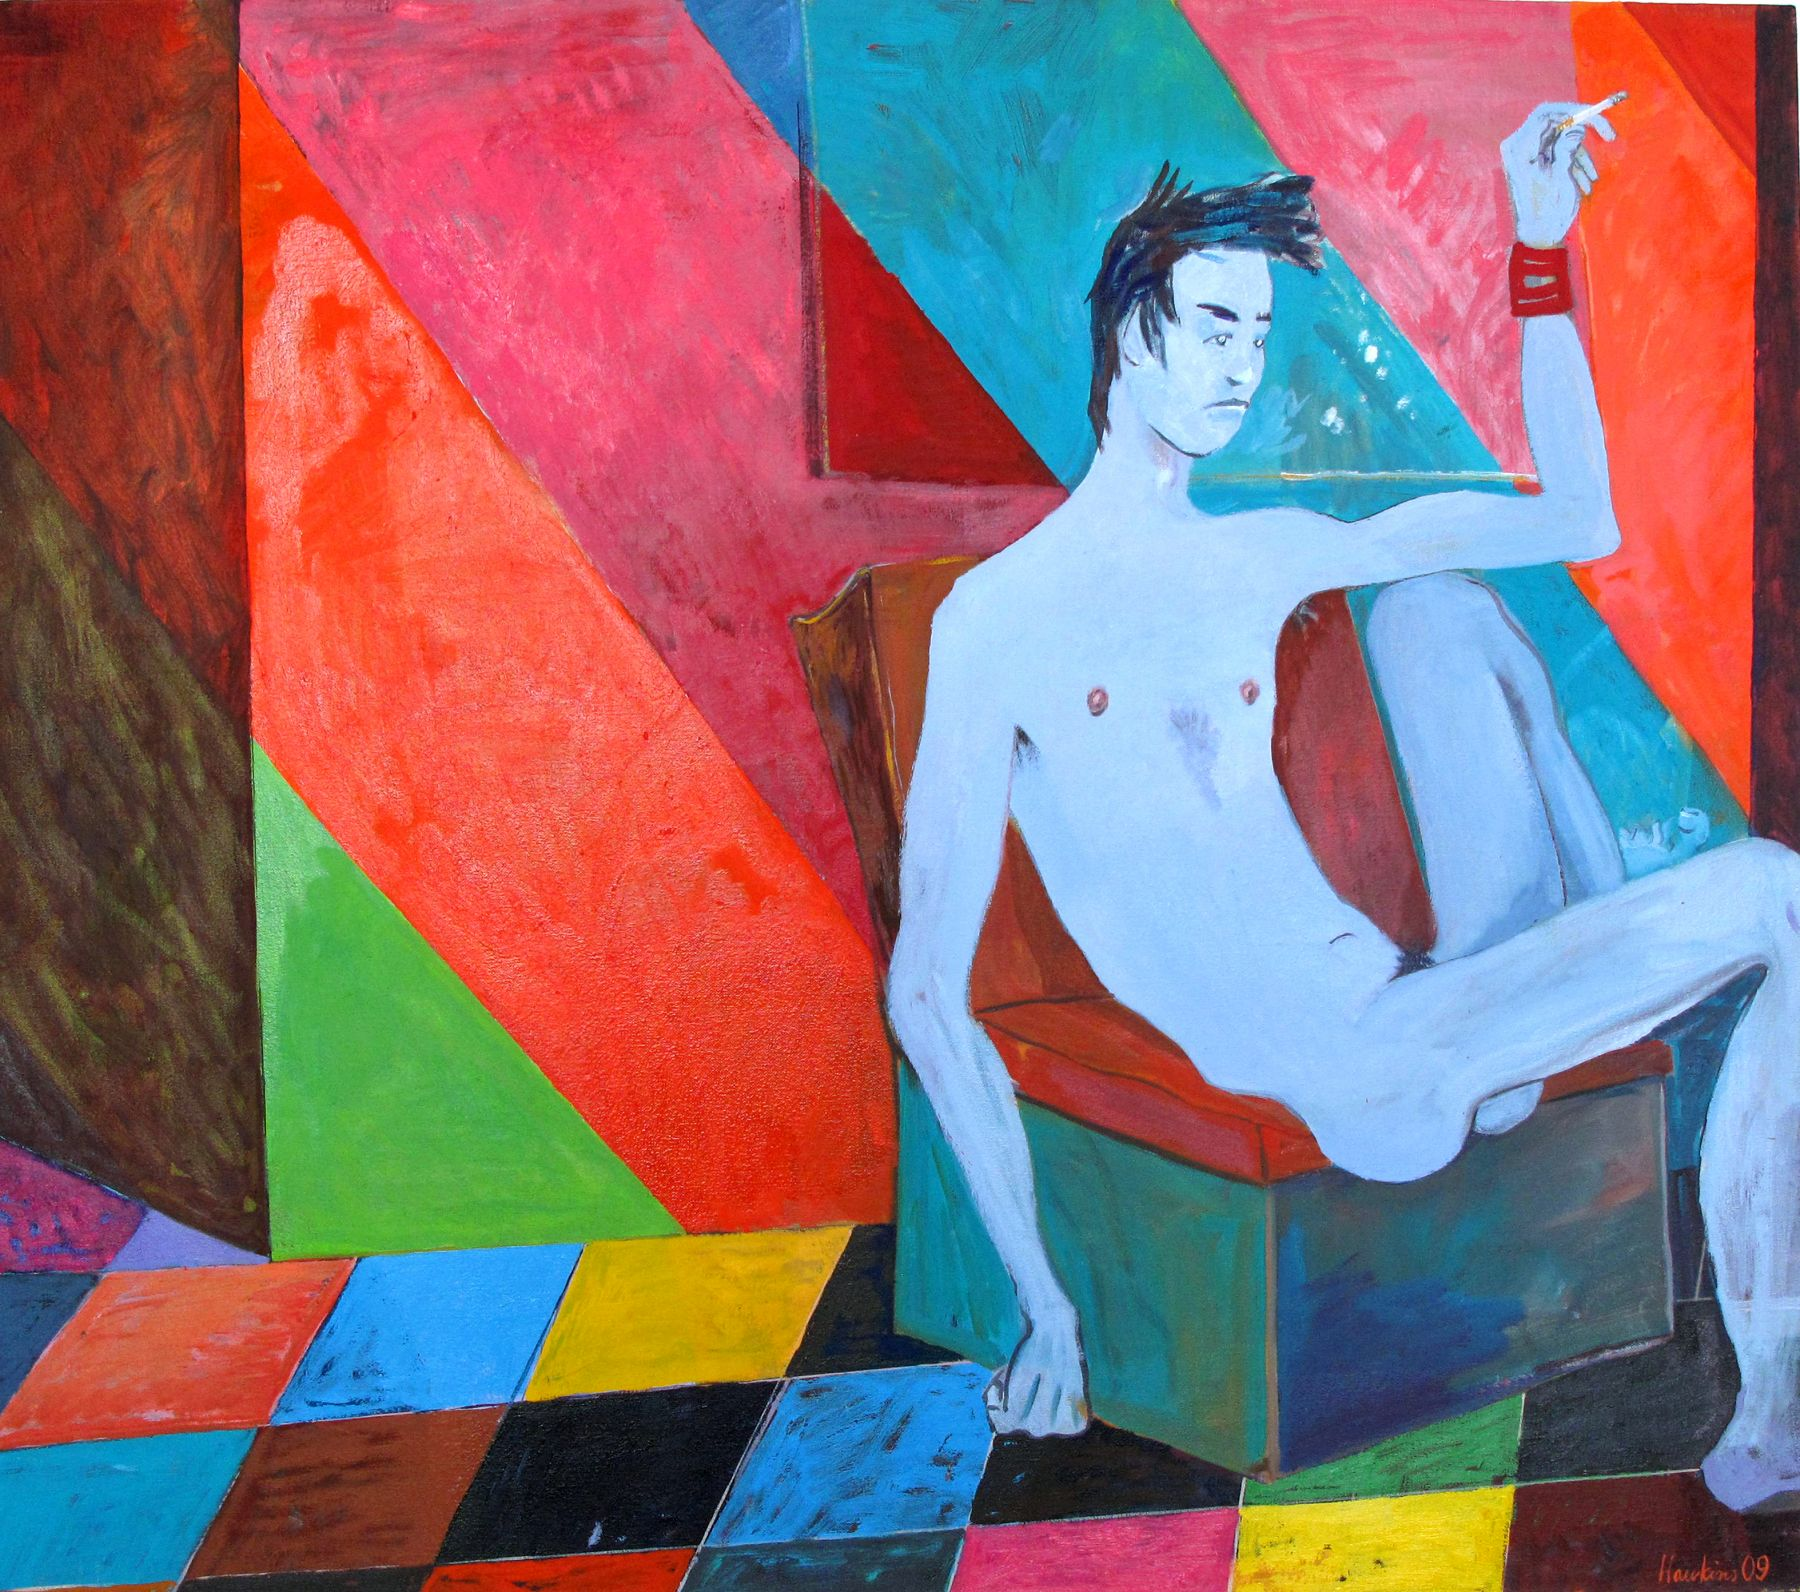 Richard Hawkins In between shows, 2009 oil on linen 37 x 42 inches (94 x 106.7 cm)